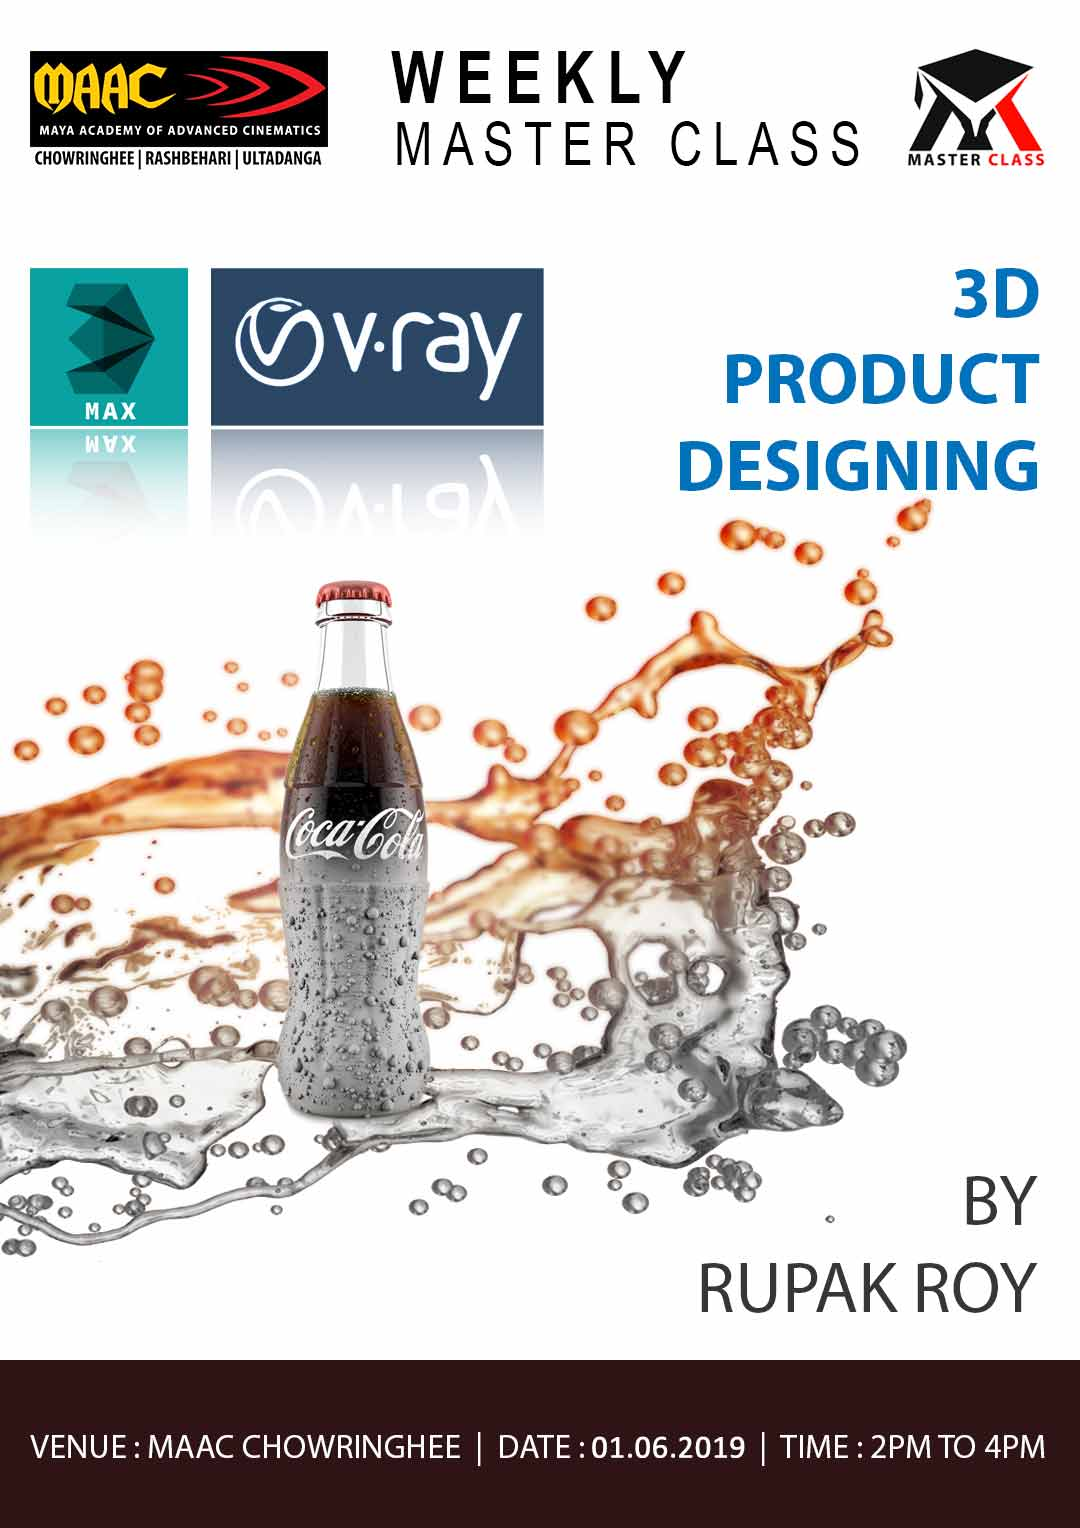 Weekly Master Class on 3D Product Designing